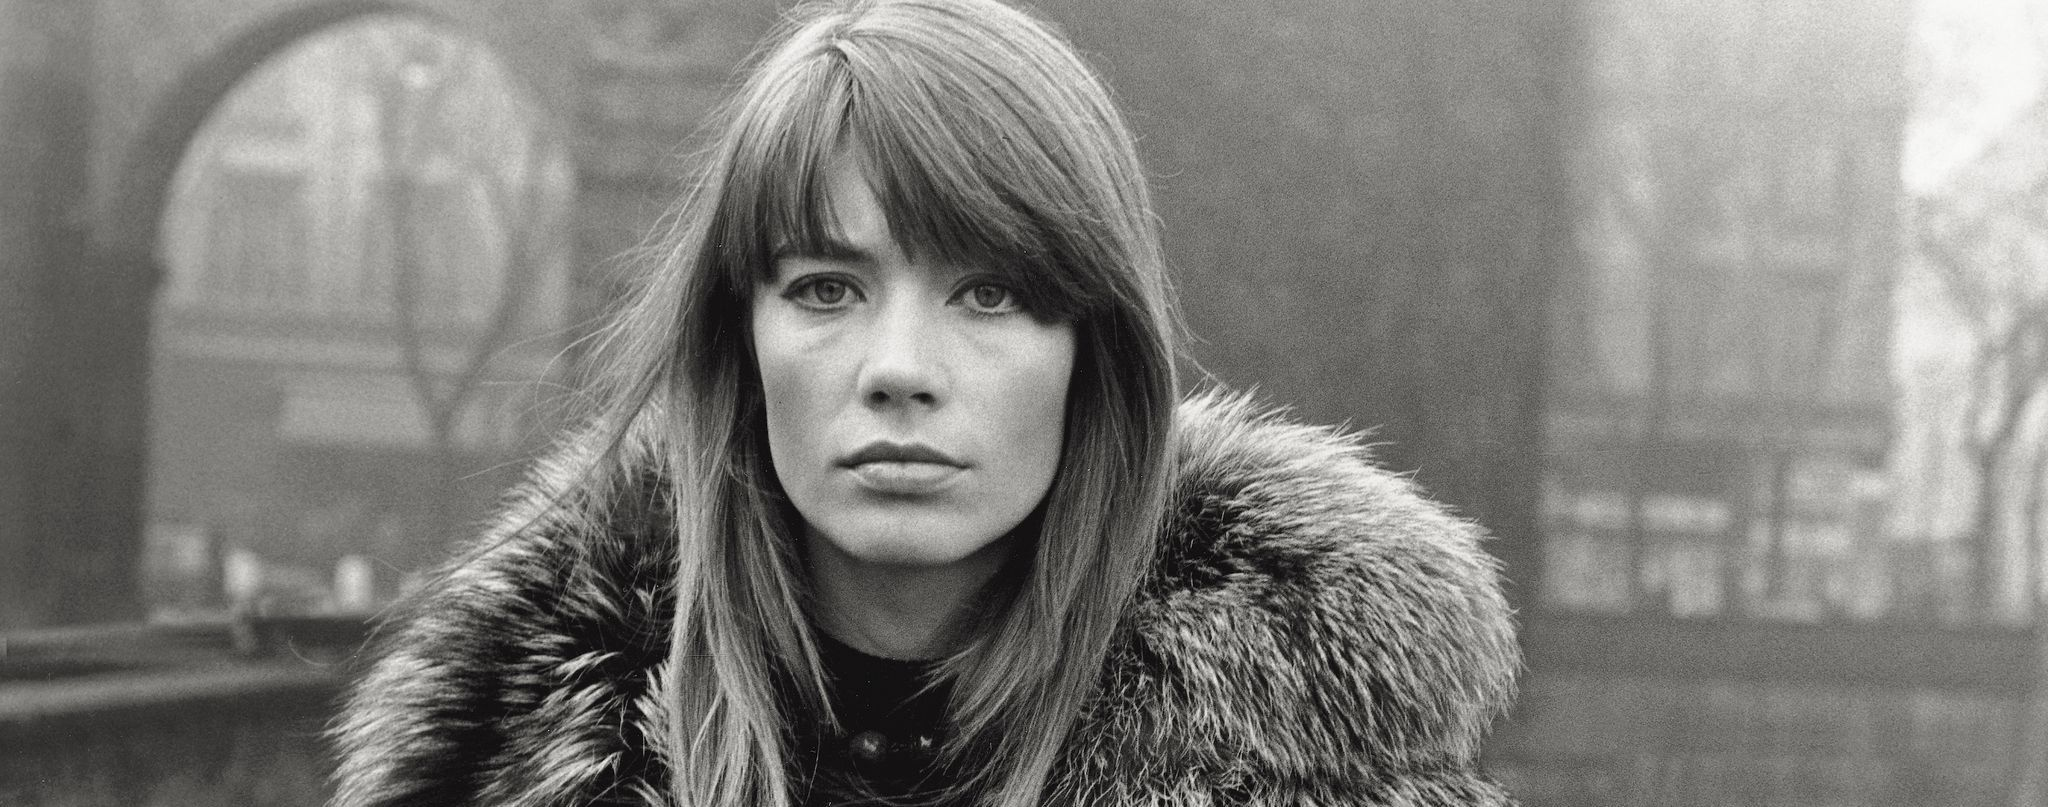 ultimate-french-girl-chic-francoise-hardy